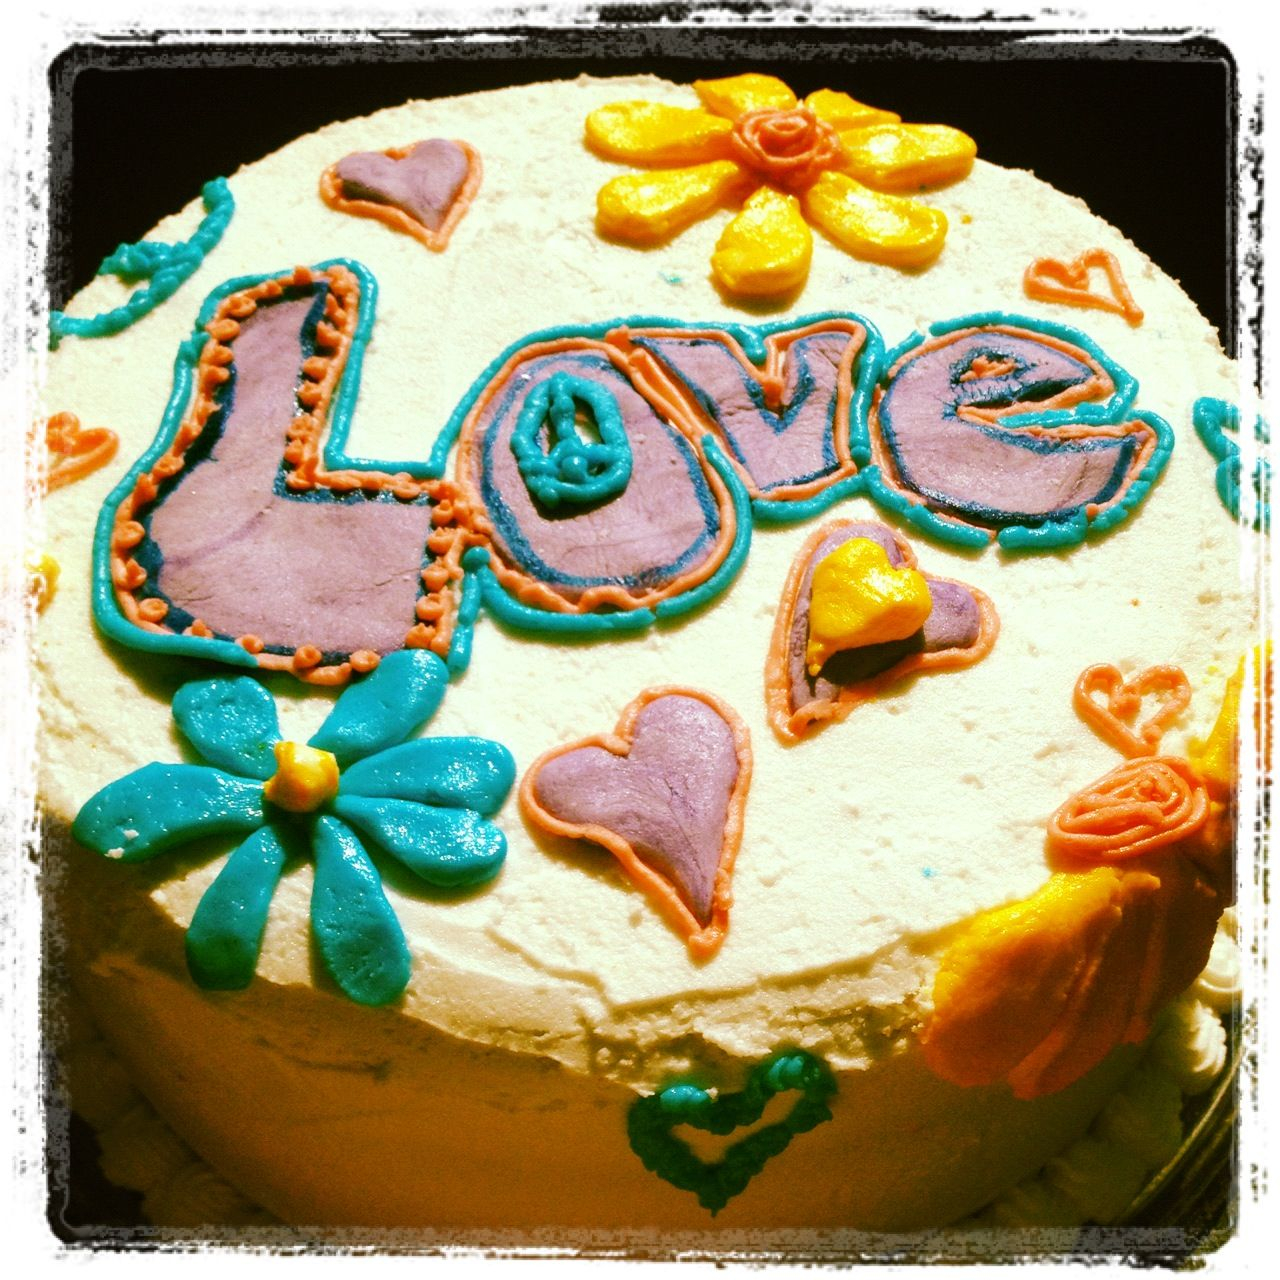 Hippie Birthday Cake Image Detail For My Hippie Fest Birthday Party Rainbow Cake